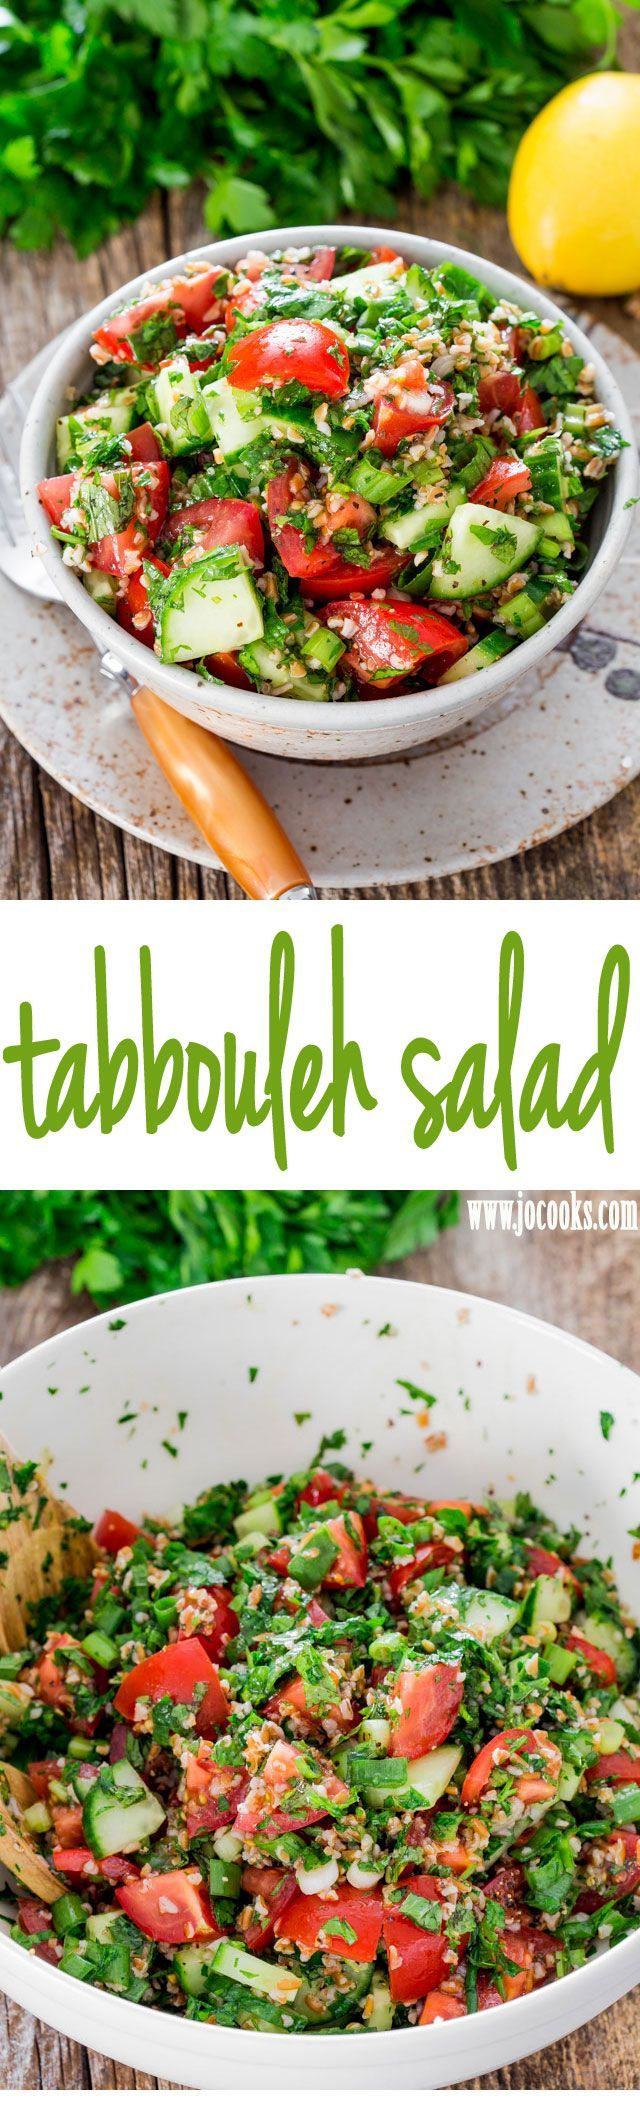 Tabbouleh Salad: a traditional refreshing tabbouleh salad featuring bulgur wheat, tomatoes, cucumber and loads of parsley and mint dressed with lemon and olive oil.